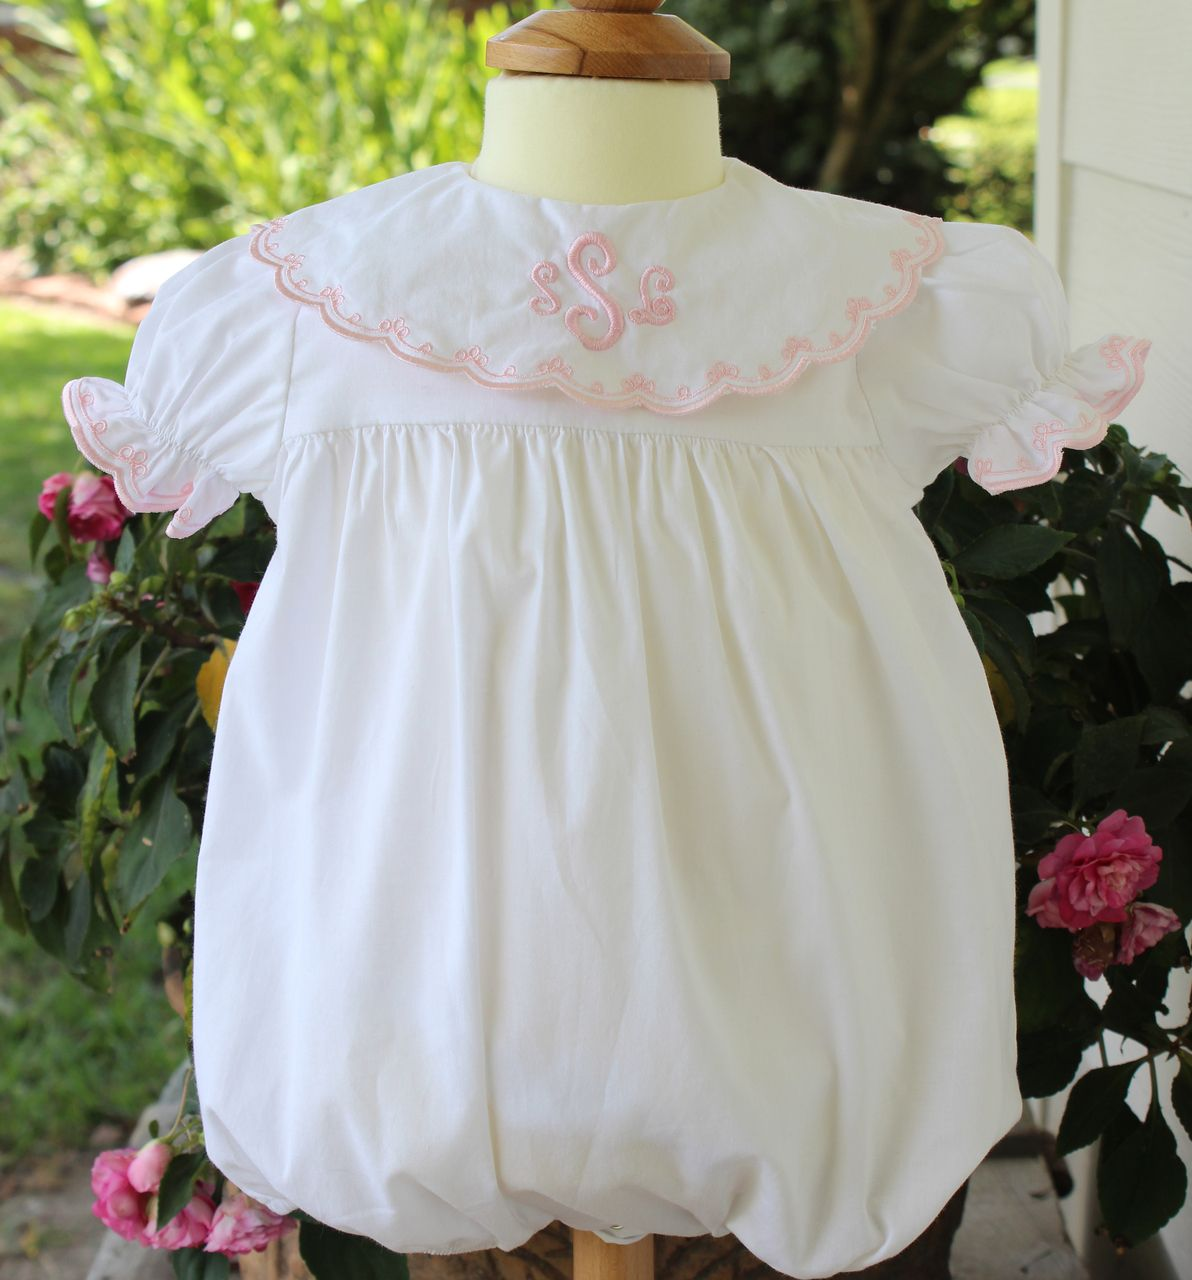 b1421c8b4 Girls White Dressy Bubble Outfit Pink Scalloped Collar